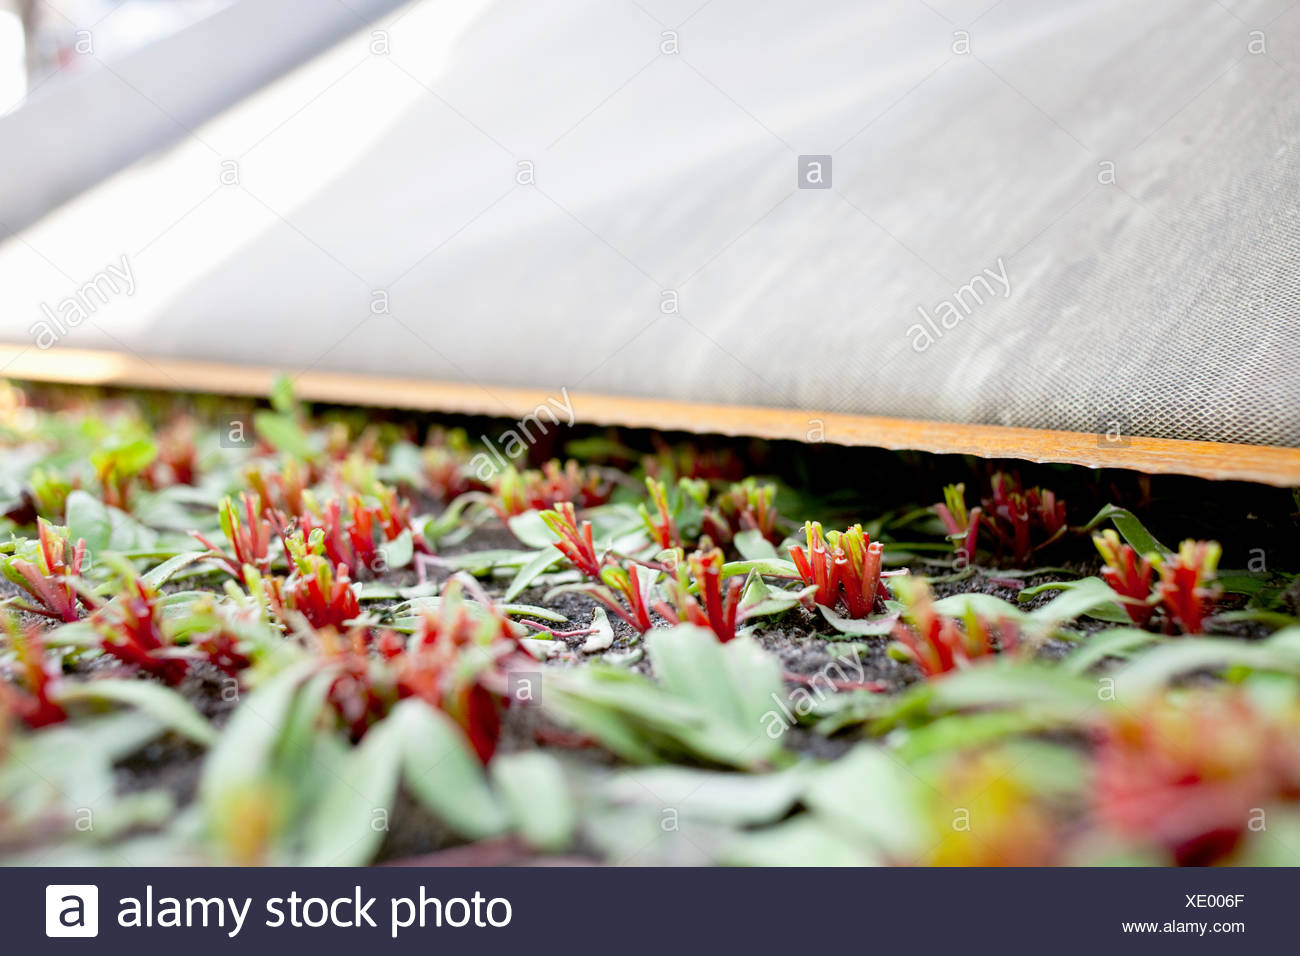 Close-up of harvested leafy vegetables - Stock Image